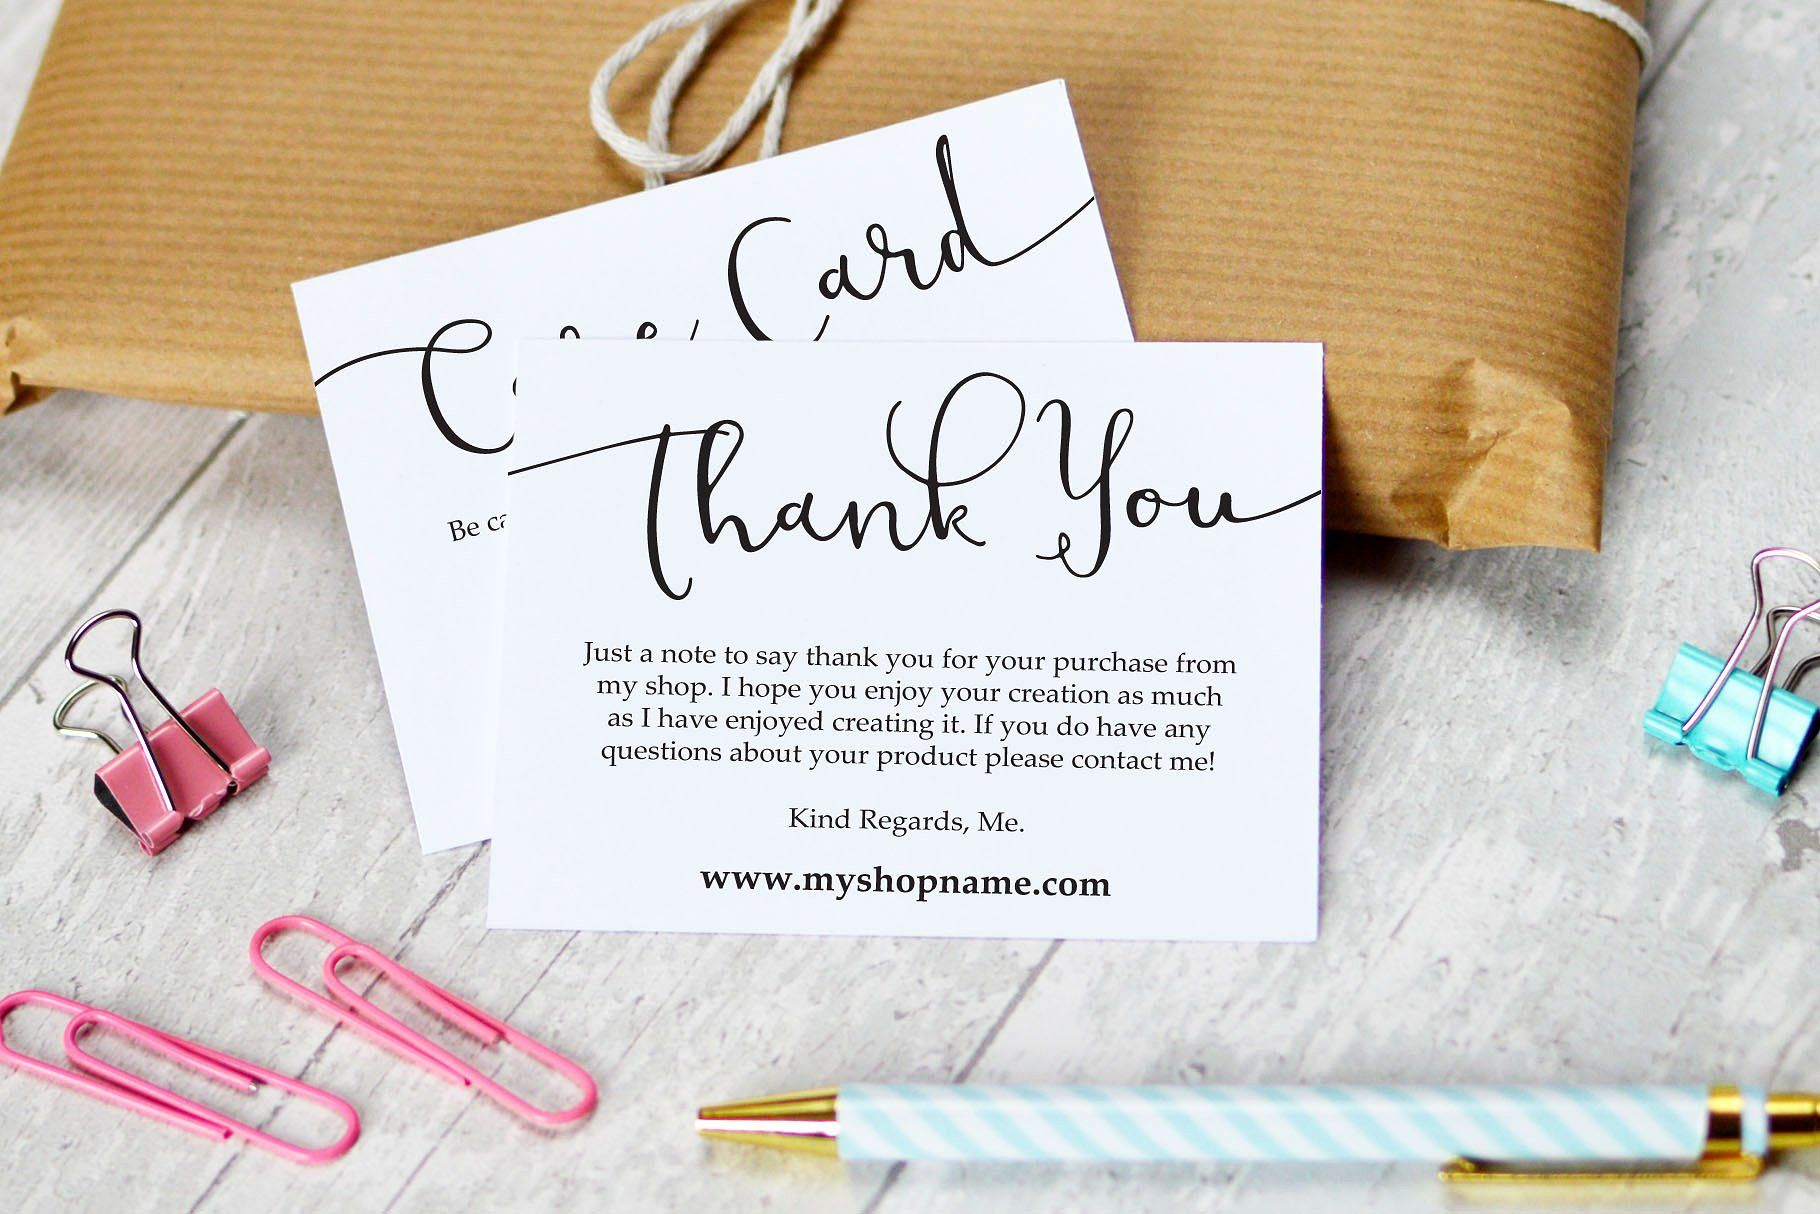 Business Thank You Care Cards Thank You Card Design Business Thank You Notes Business Thank You Cards